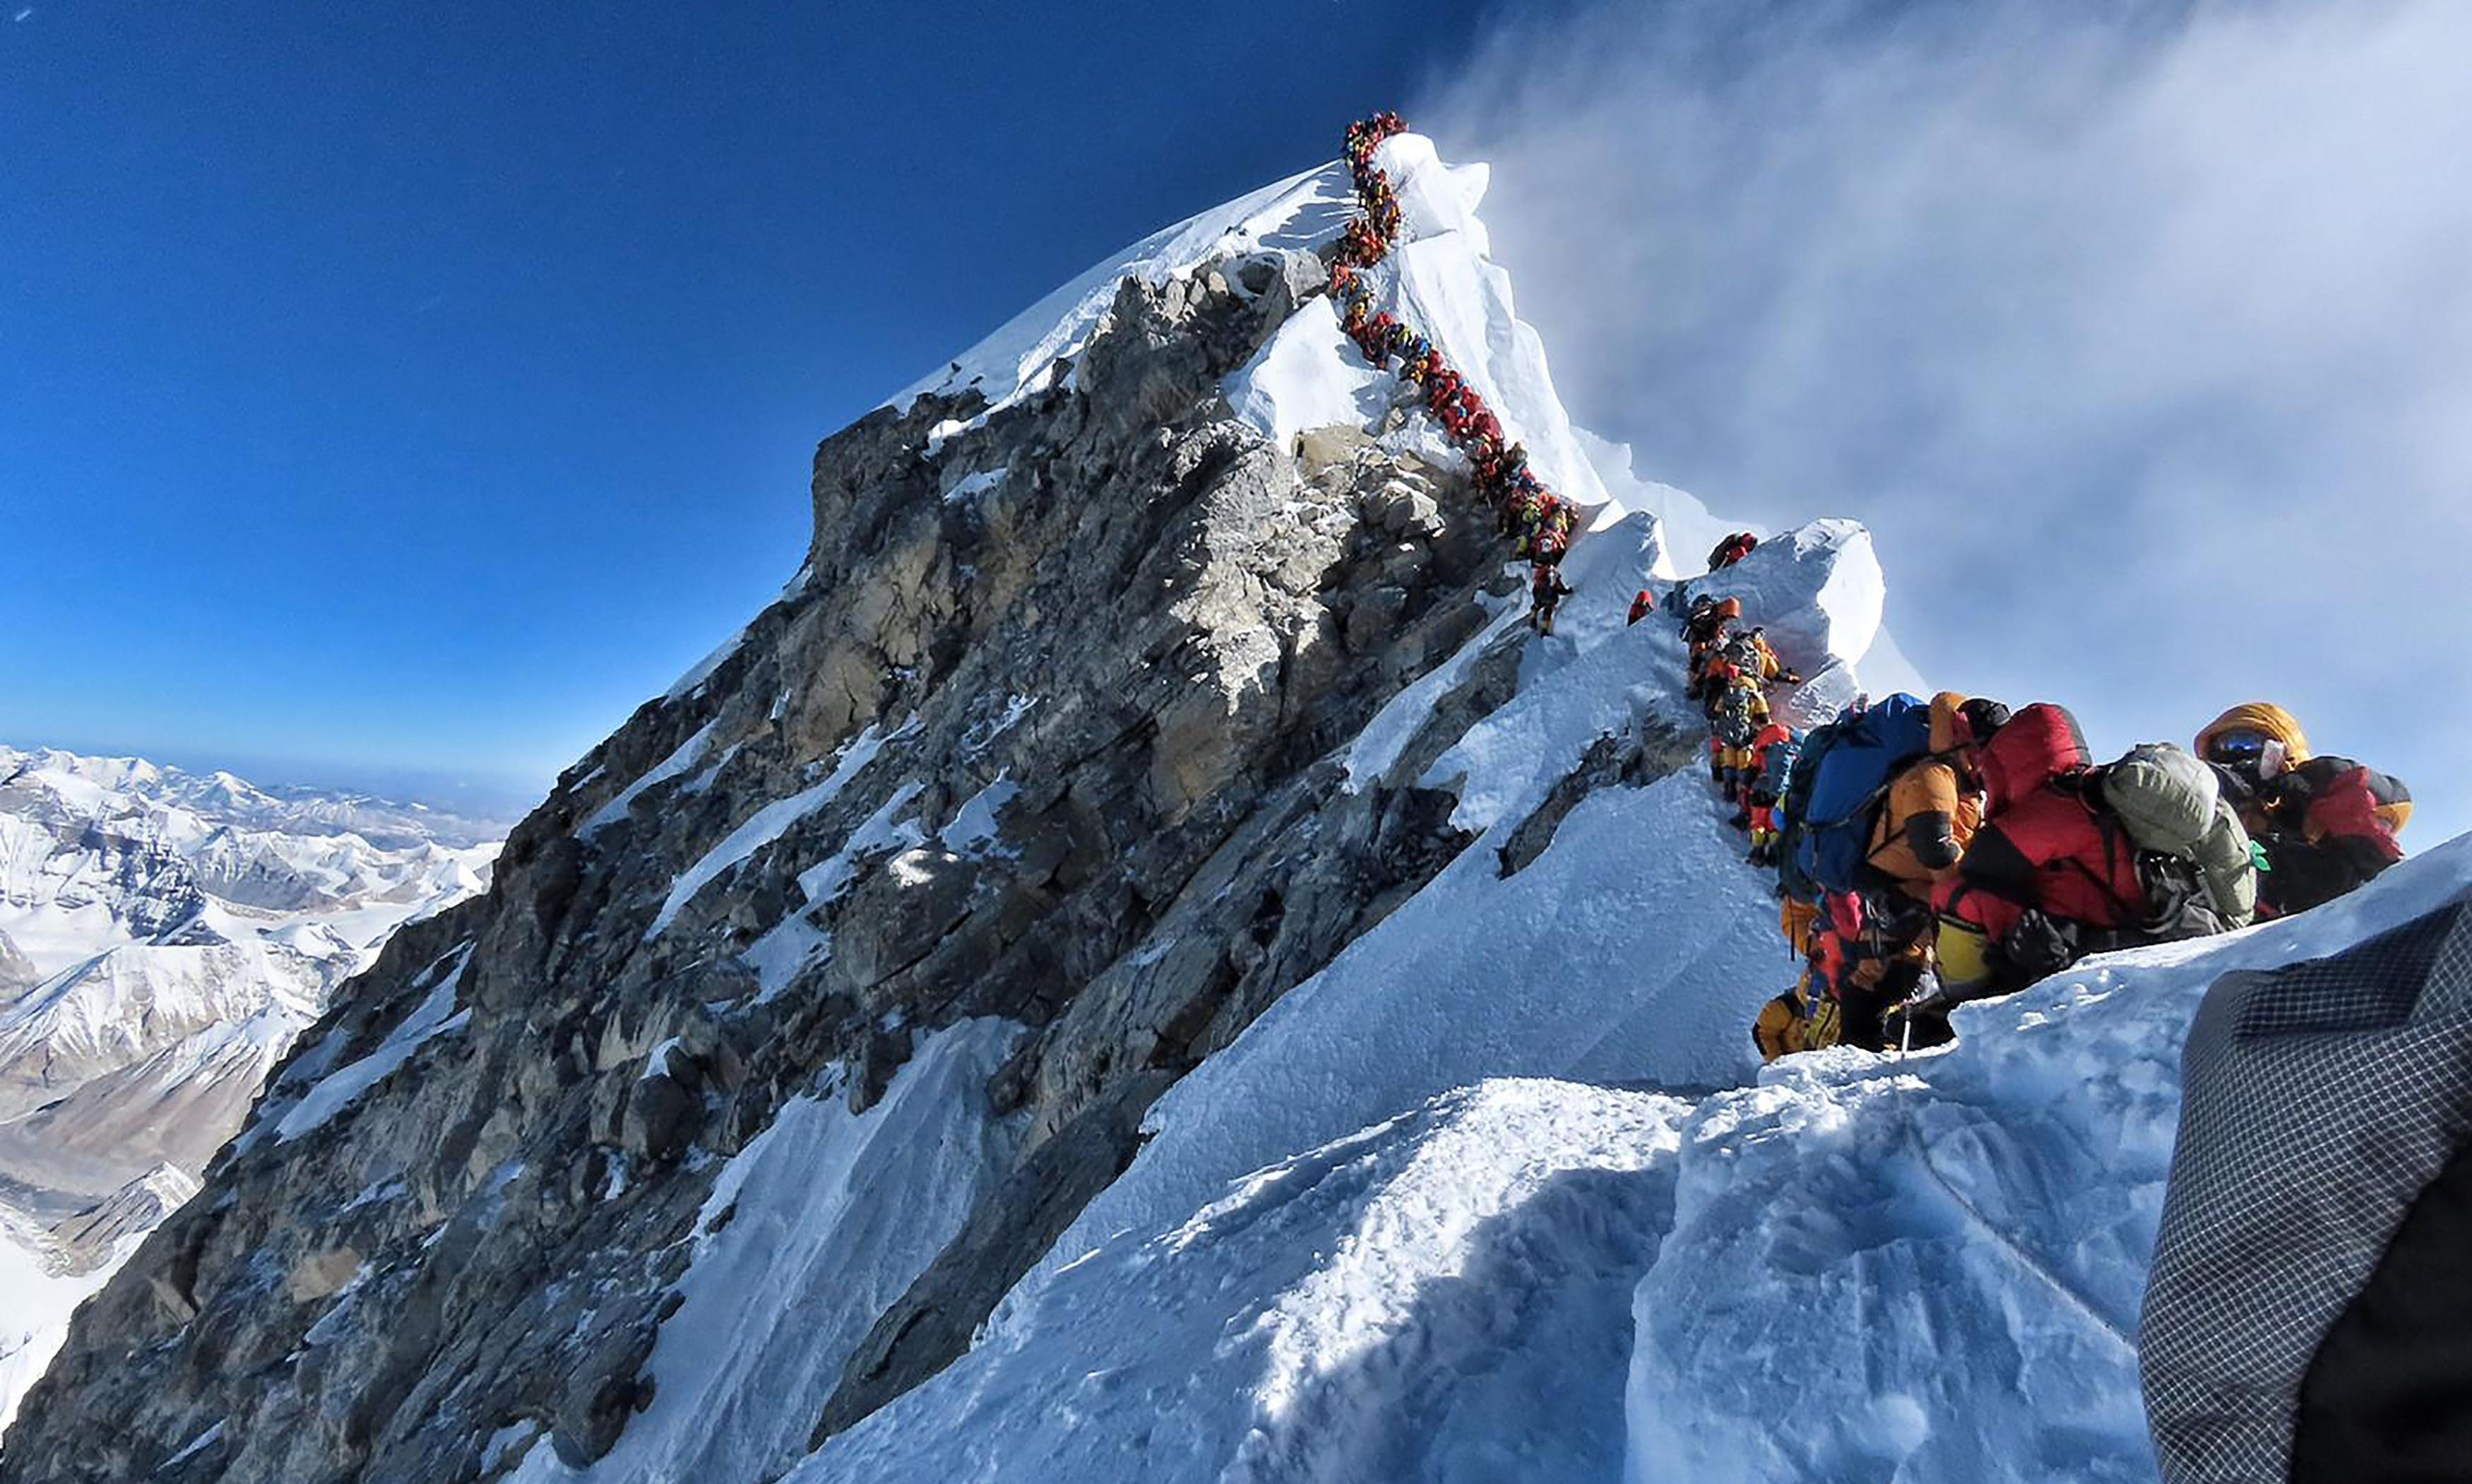 Why I won't be joining the queue at the top of Everest